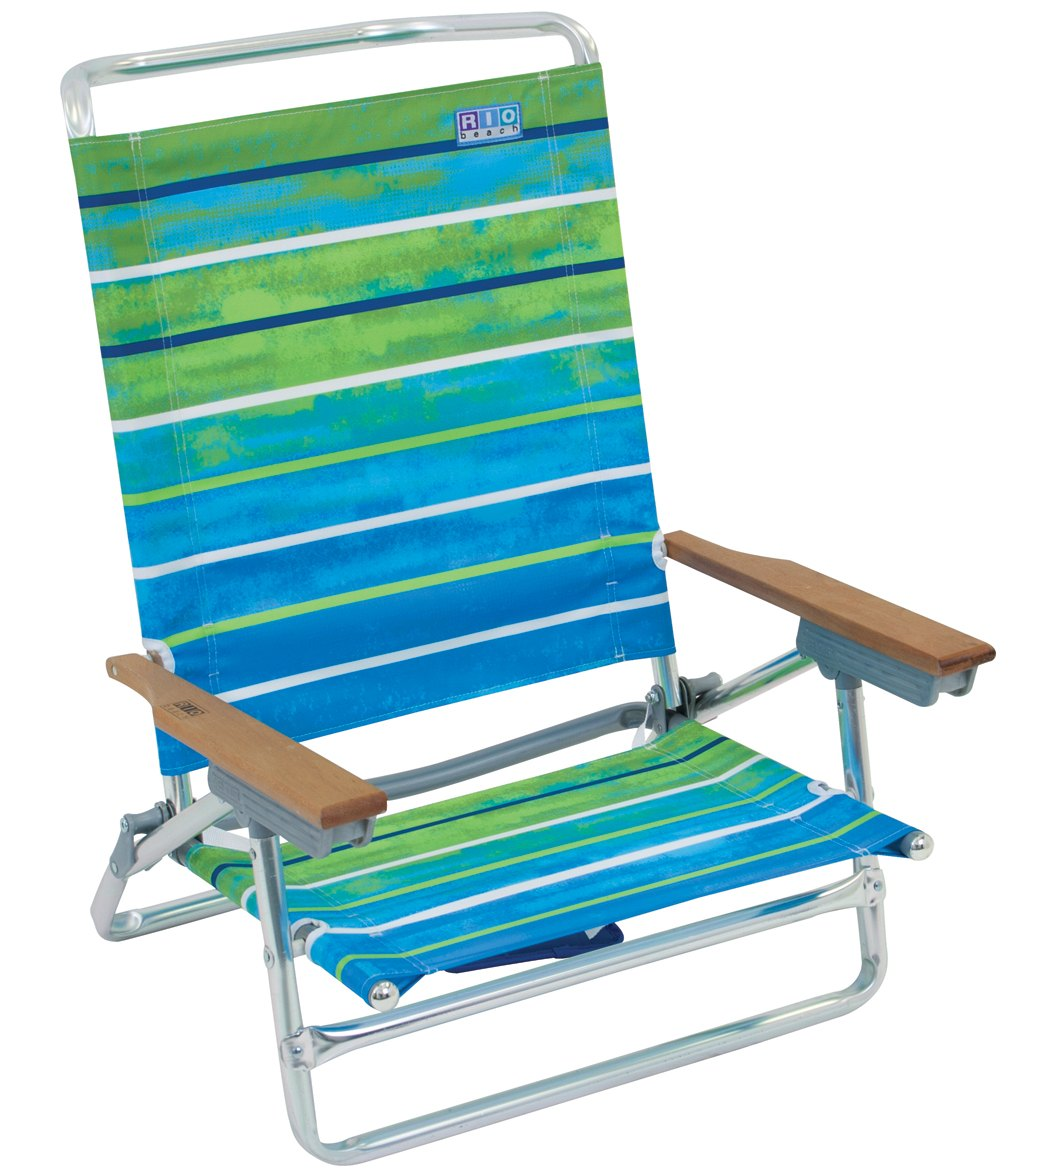 Rio Brands Classic 5 Position Beach Chair at SwimOutlet Free Shipping